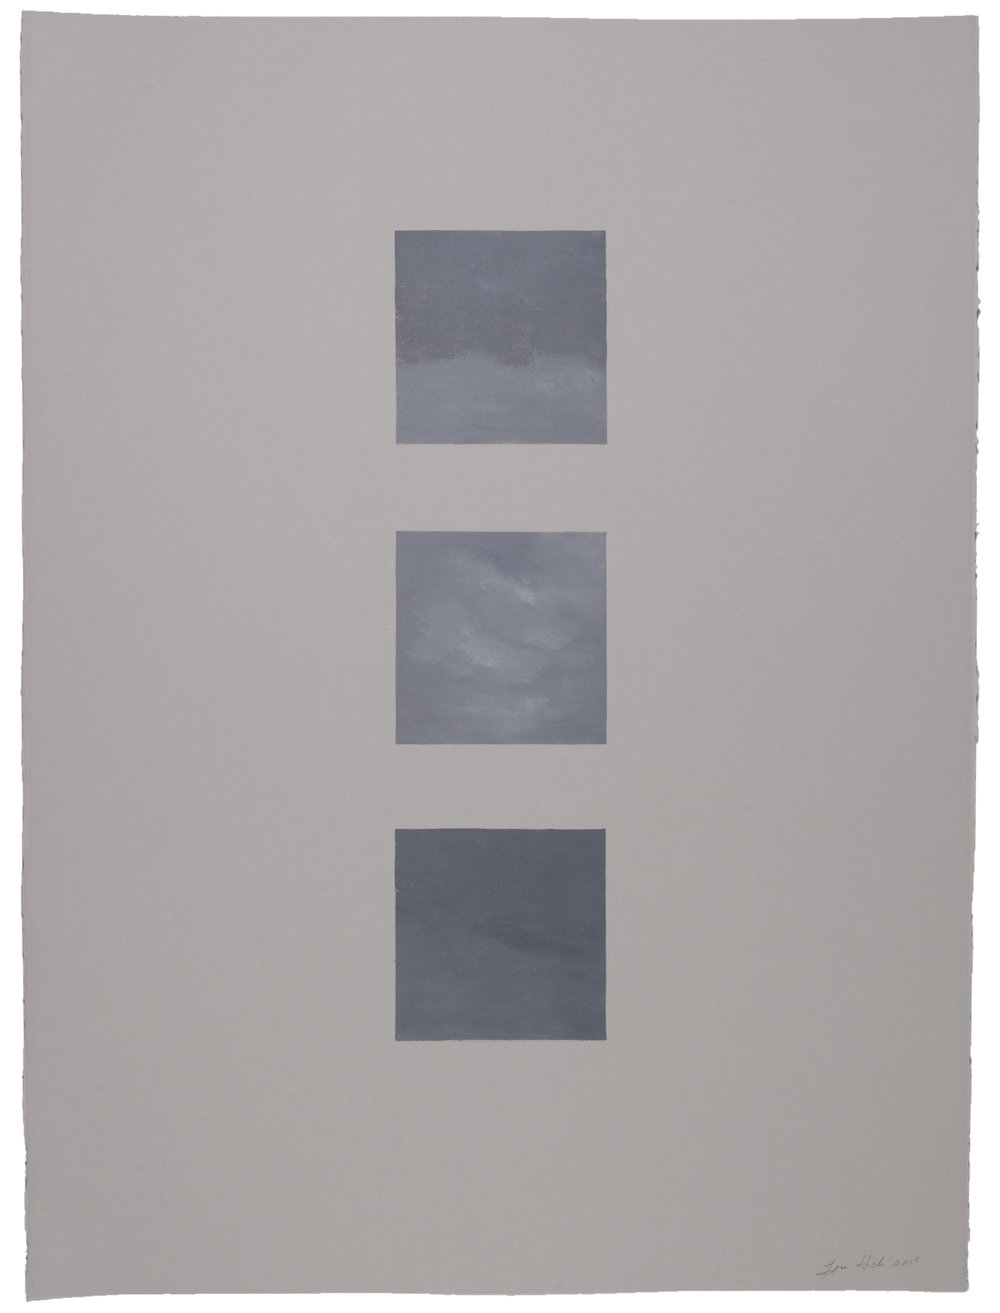 Untitled (X) , 2018 Monotype Image and Paper Size: 30 x 22 inches Series of 15